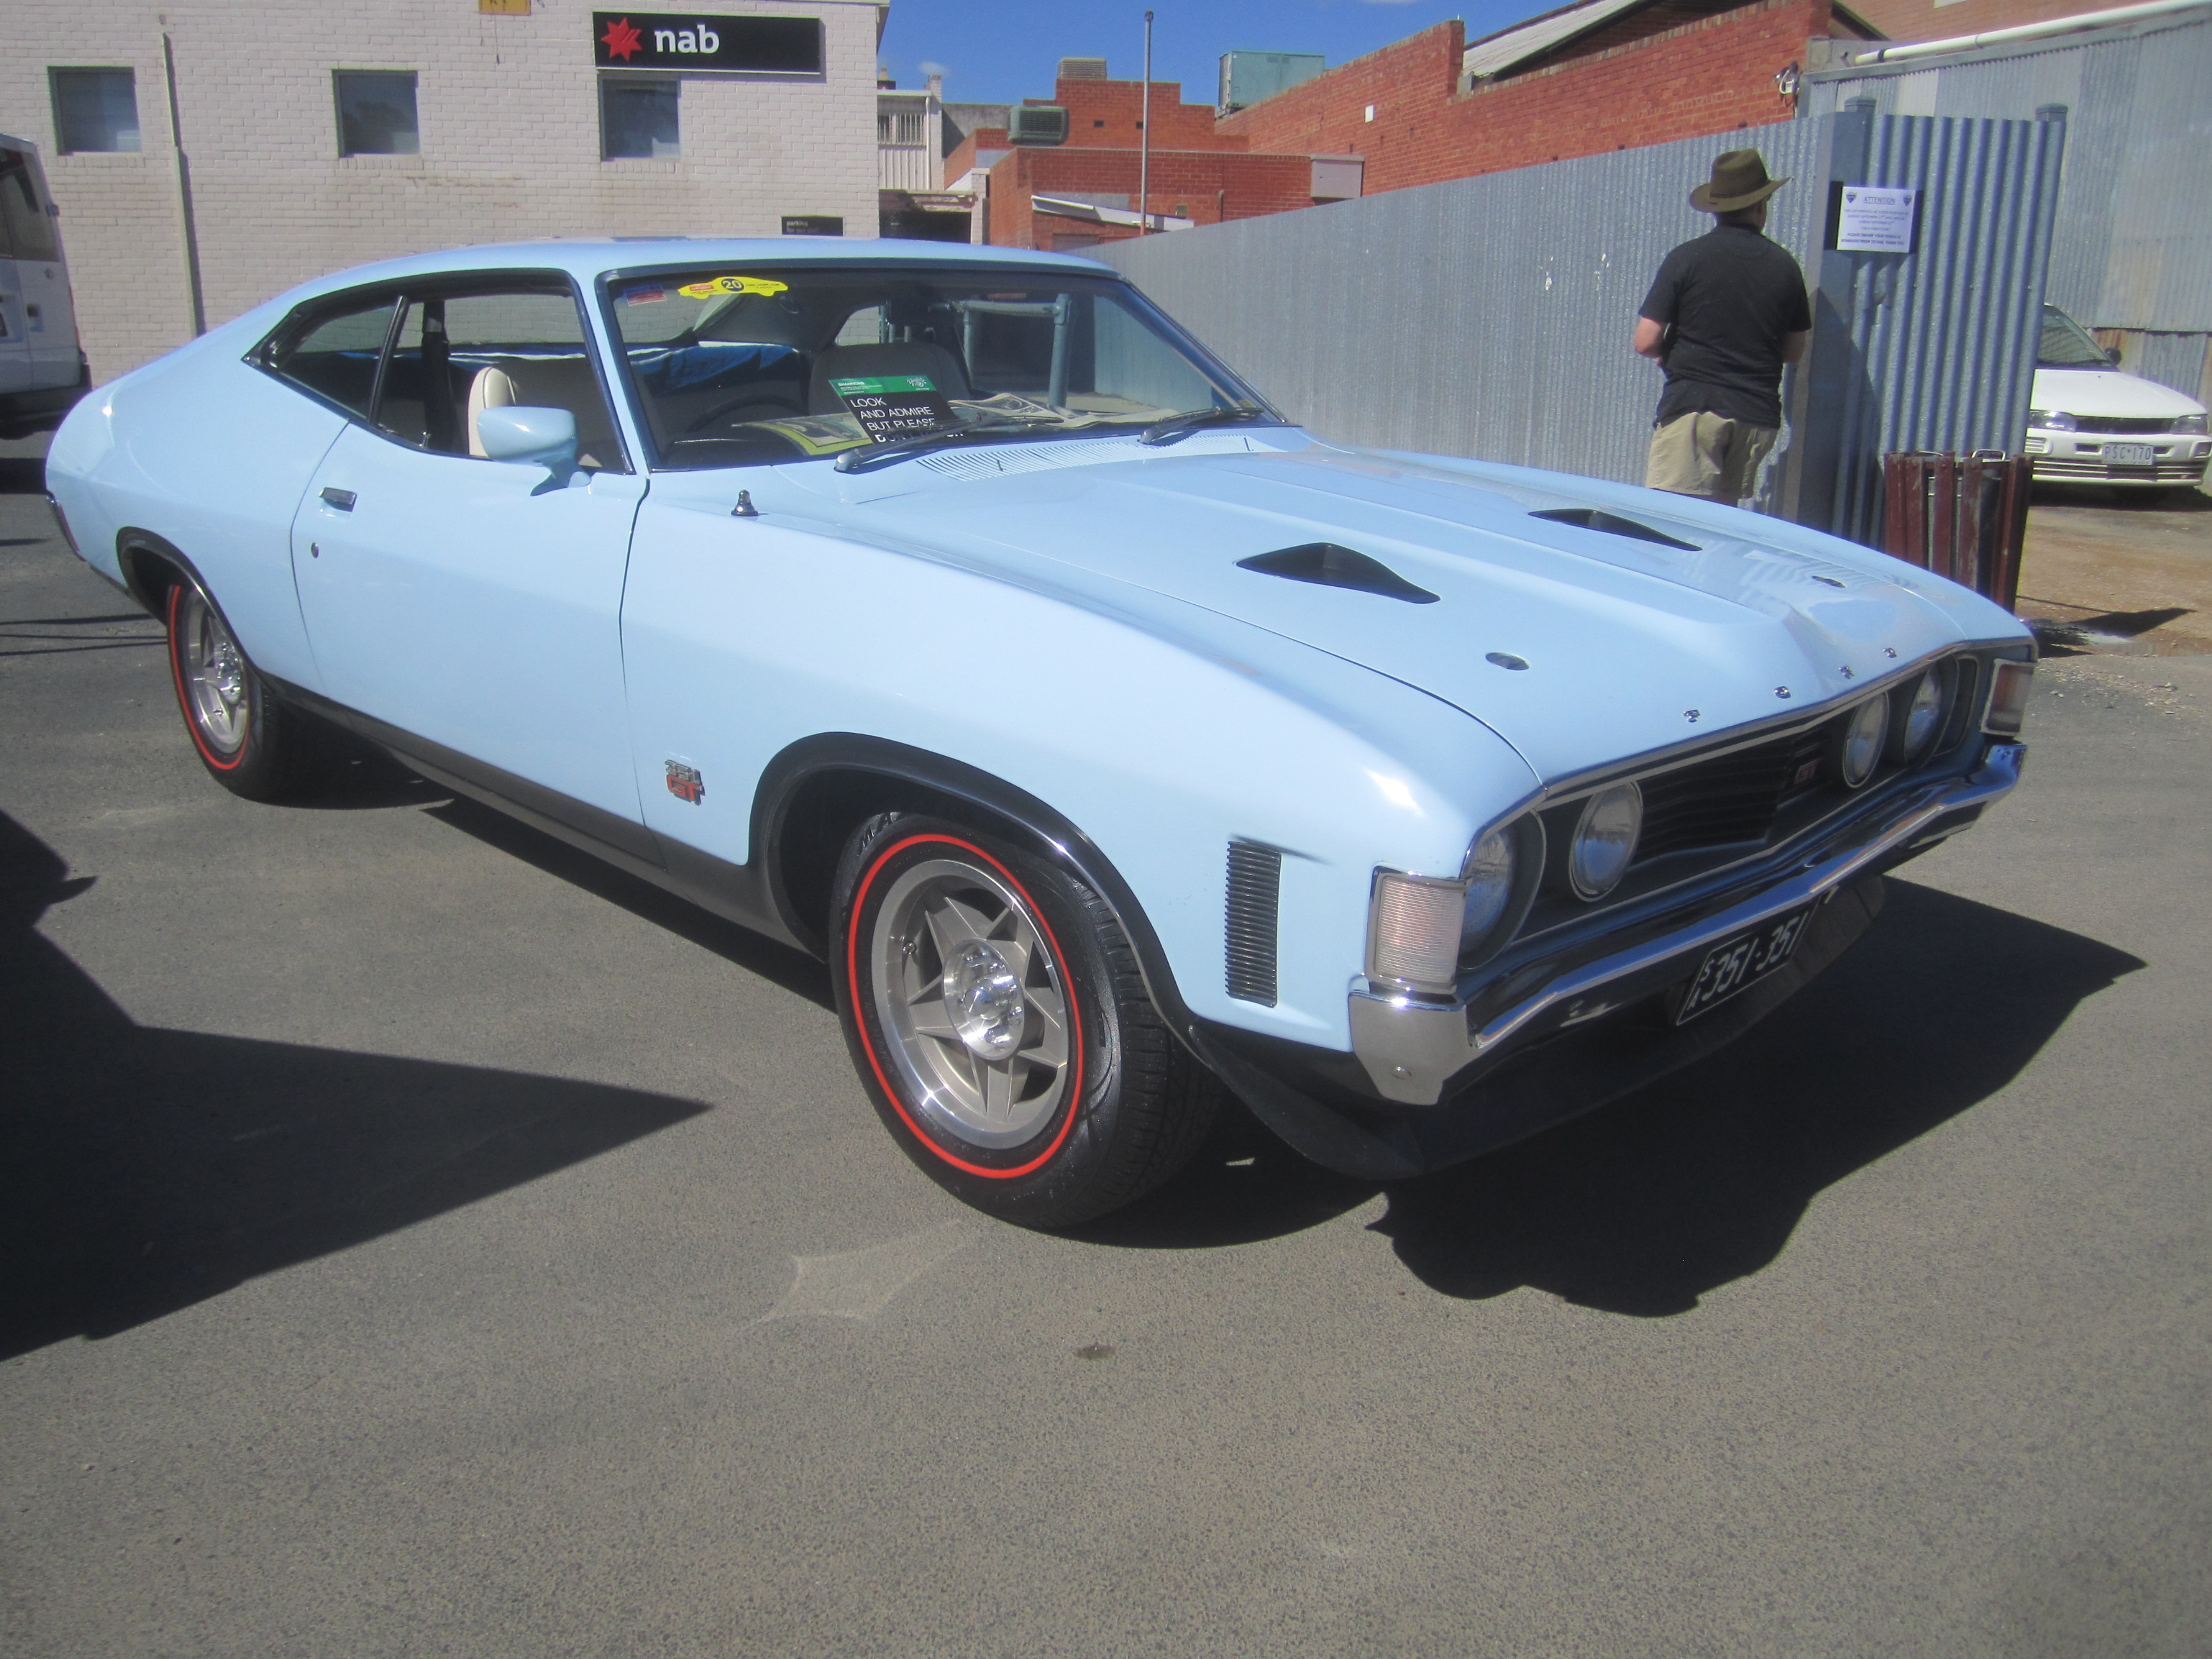 Ford Falcon Gt Model Cars